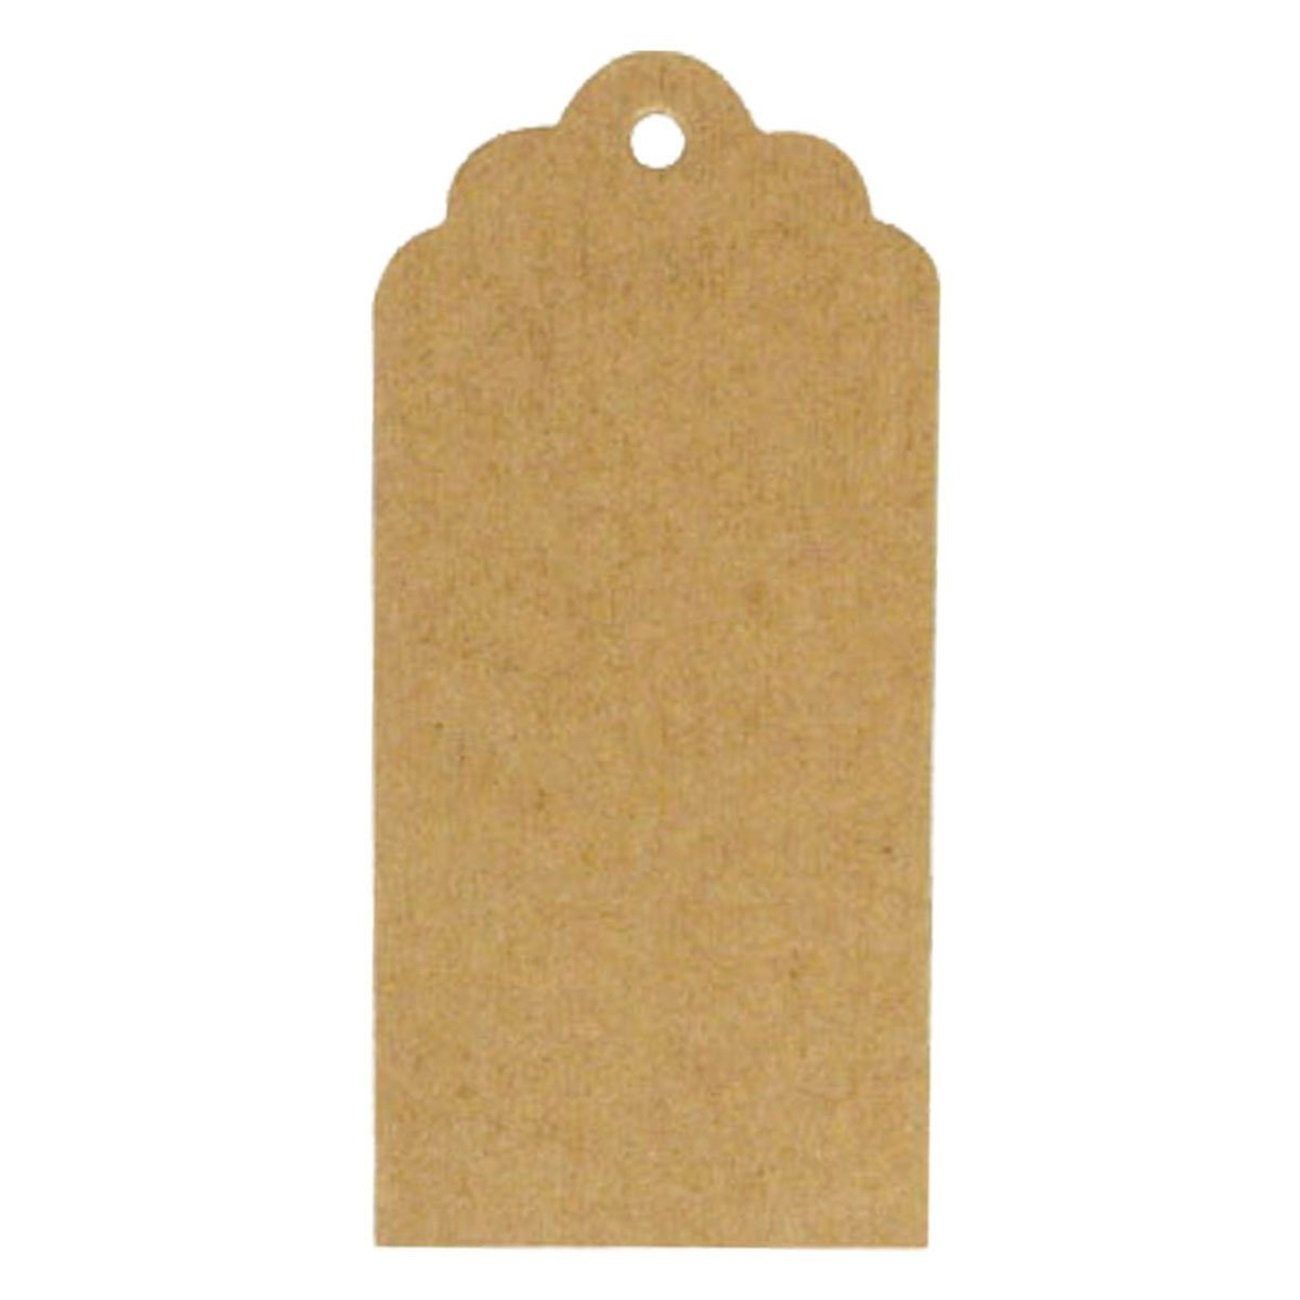 amazoncom wrapables 50 gift tagskraft hang tags with free cut strings for gifts crafts and price tags scalloped tag arts crafts sewing